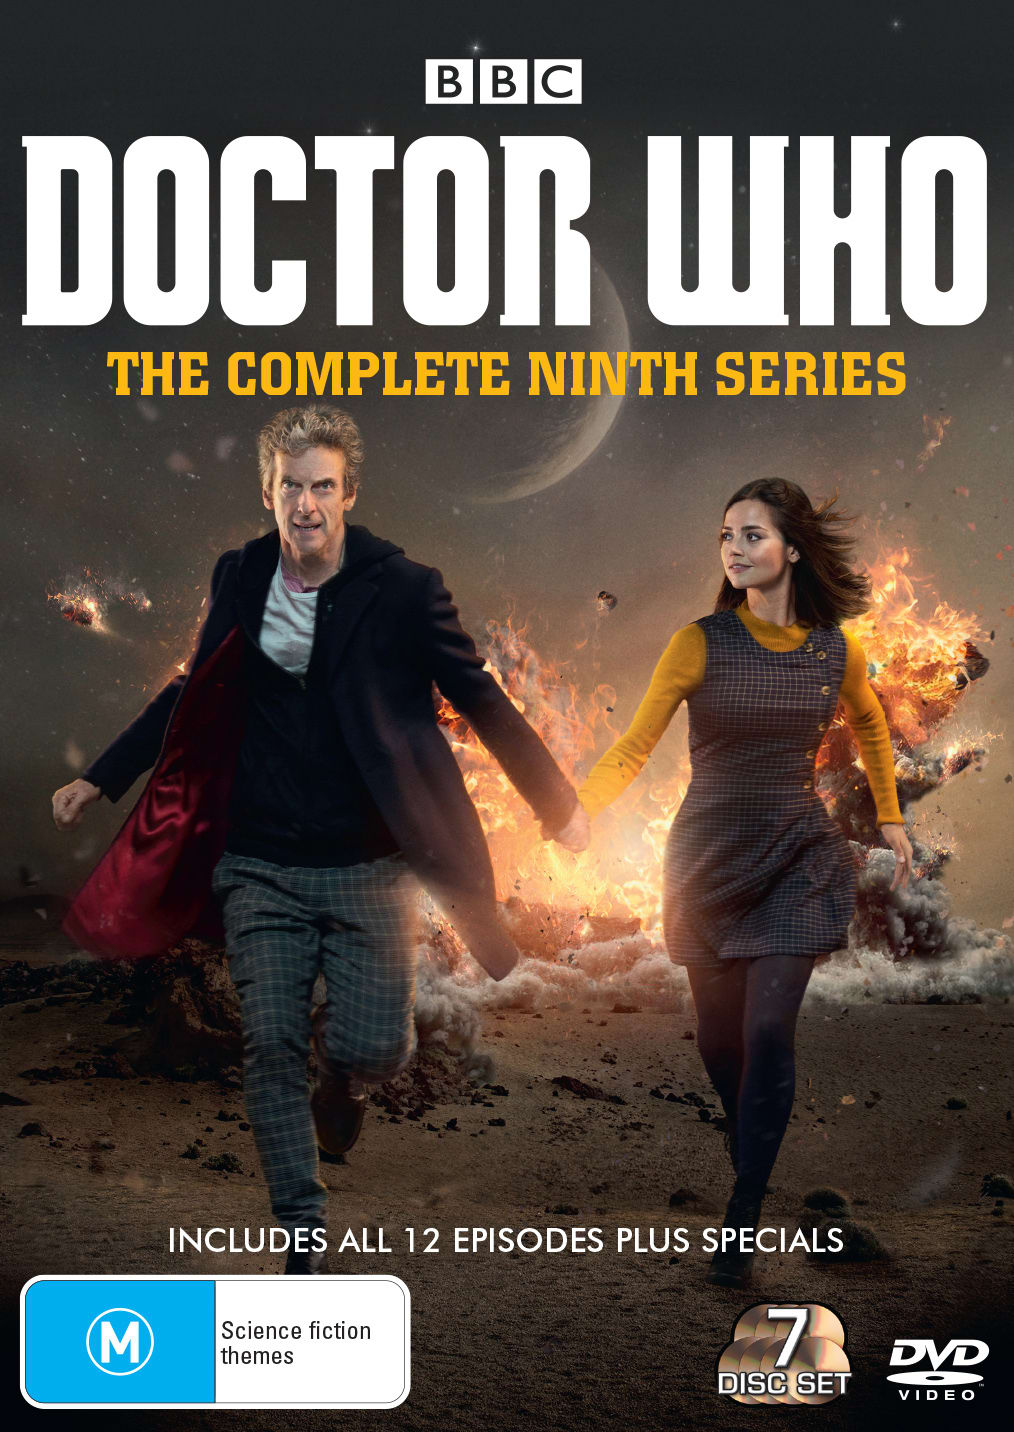 Doctor Who: The Complete Ninth Series (Box Set) [DVD]